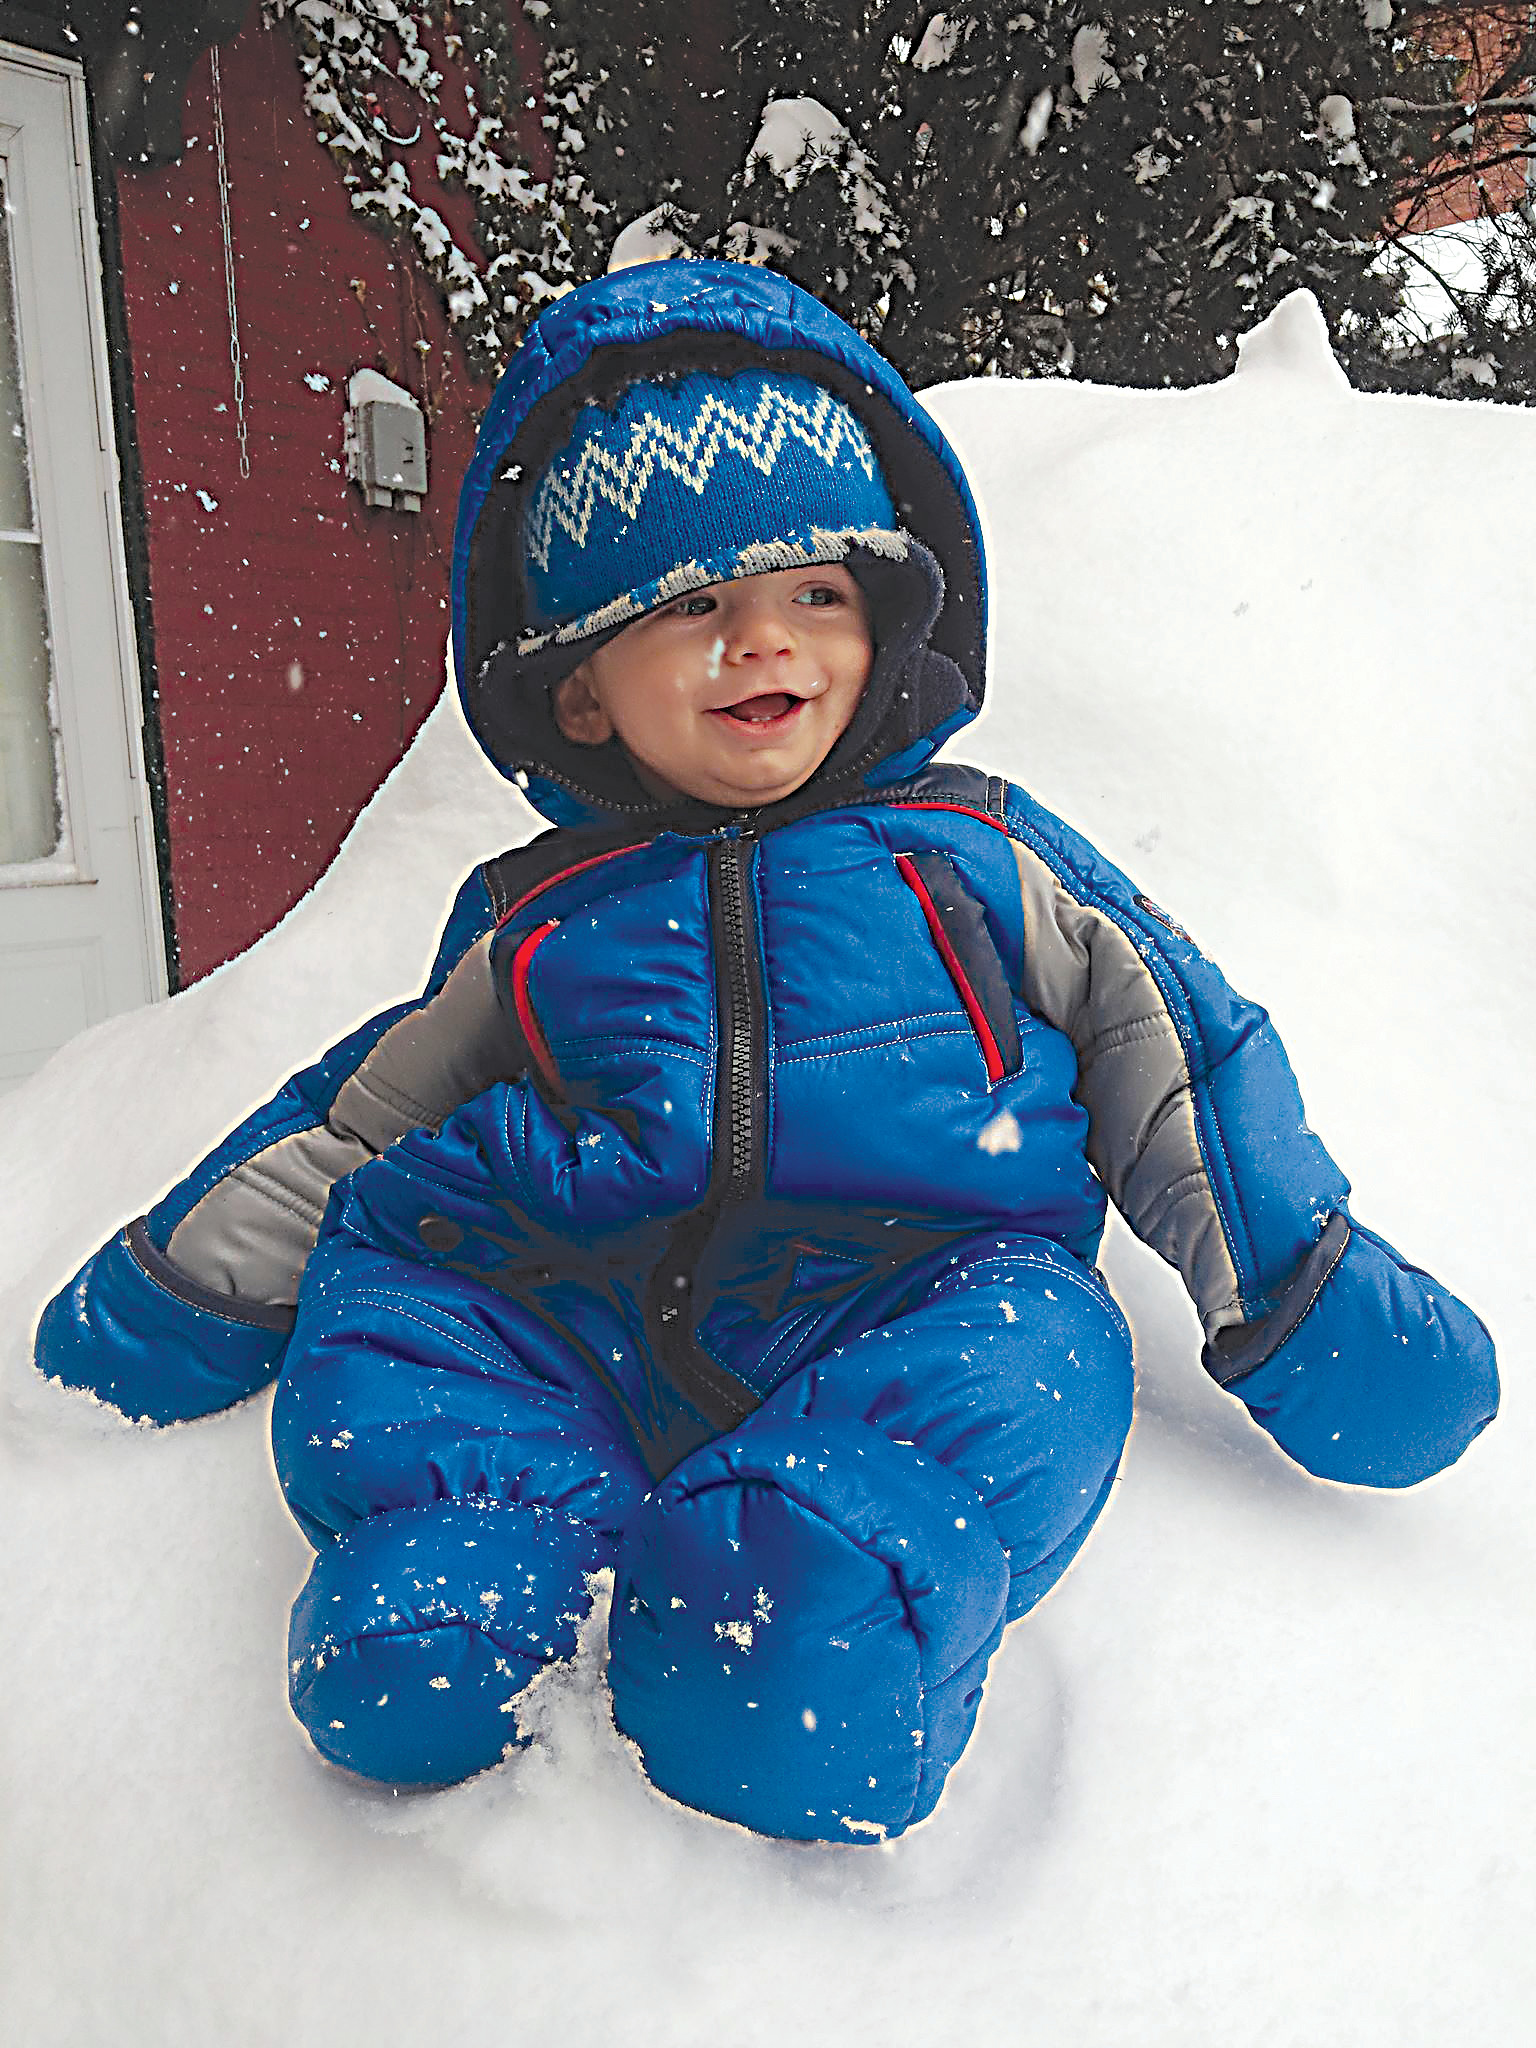 Axel Backenstoes, 9 months, enjoys his first snow storm in Middletown.